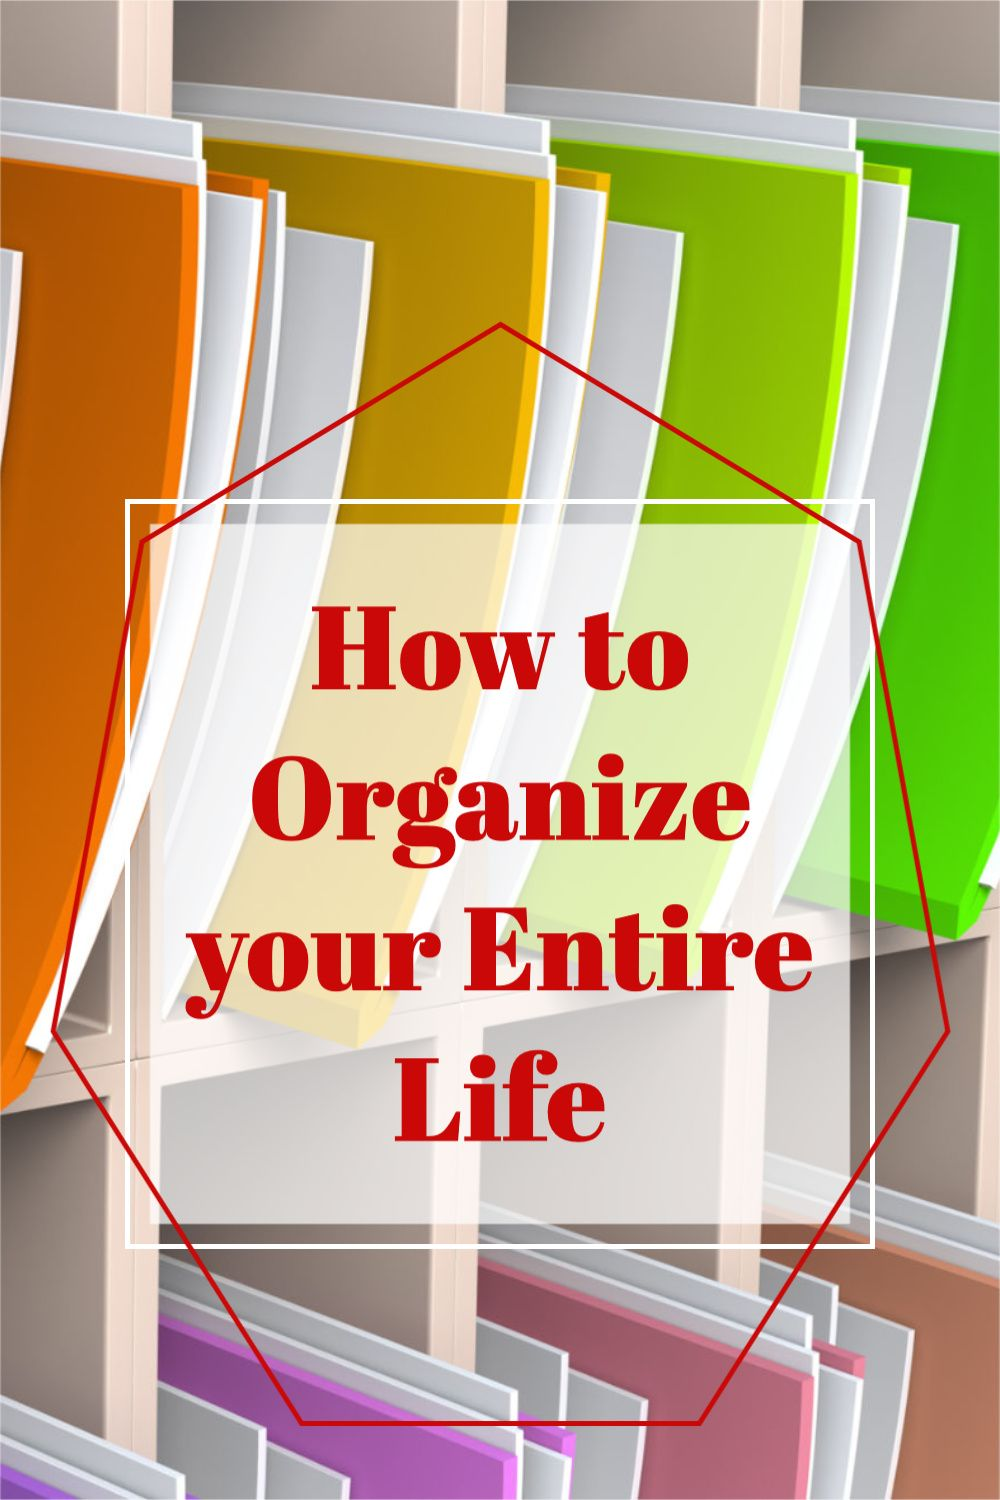 13 Ways to Organize Your Life (And Keep It That Way!)